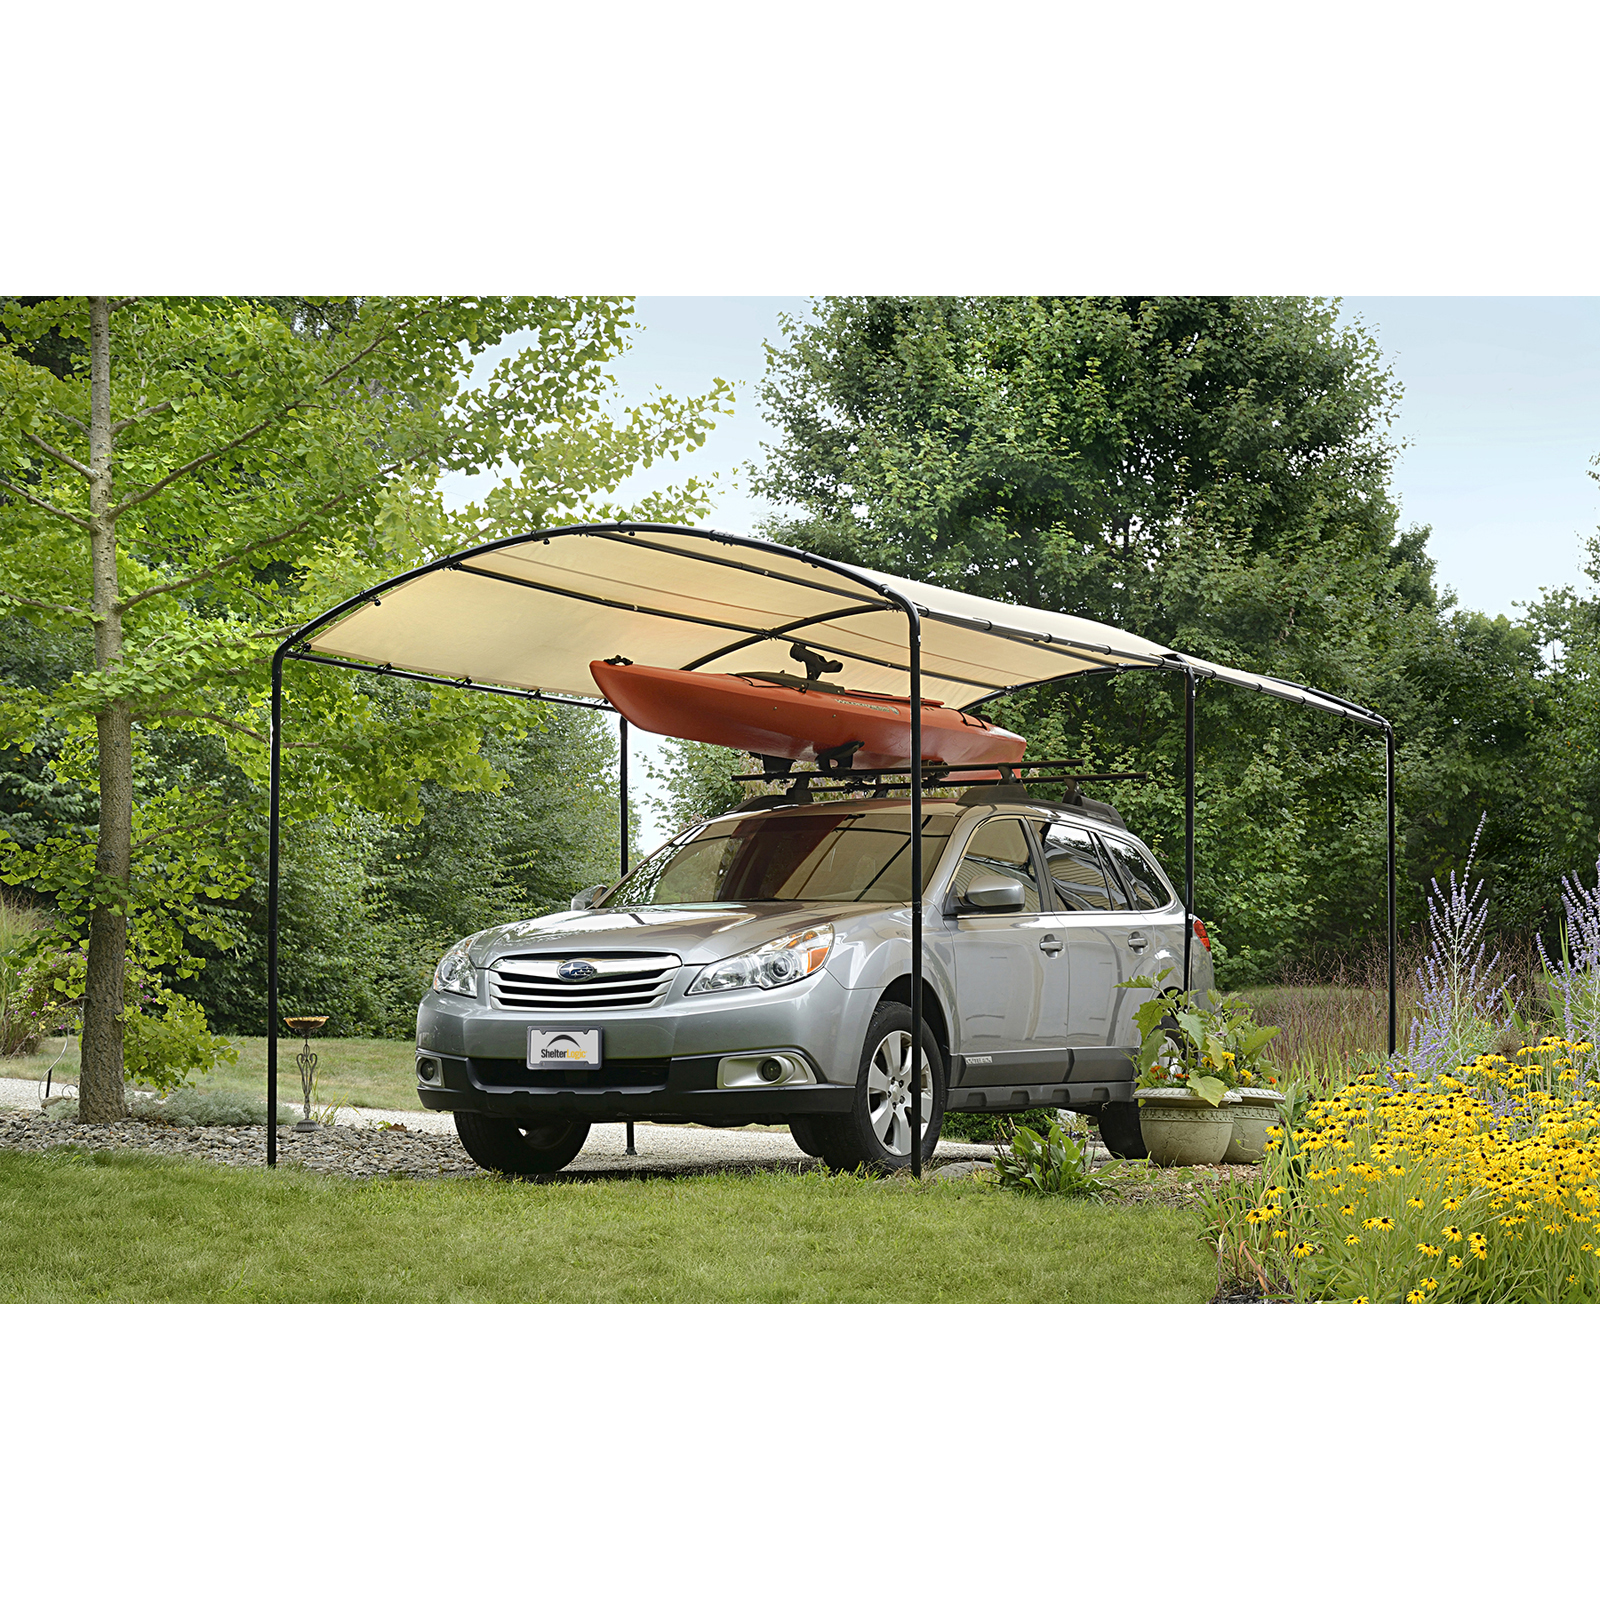 shelterlogic monarc car canopy JMHHXFA